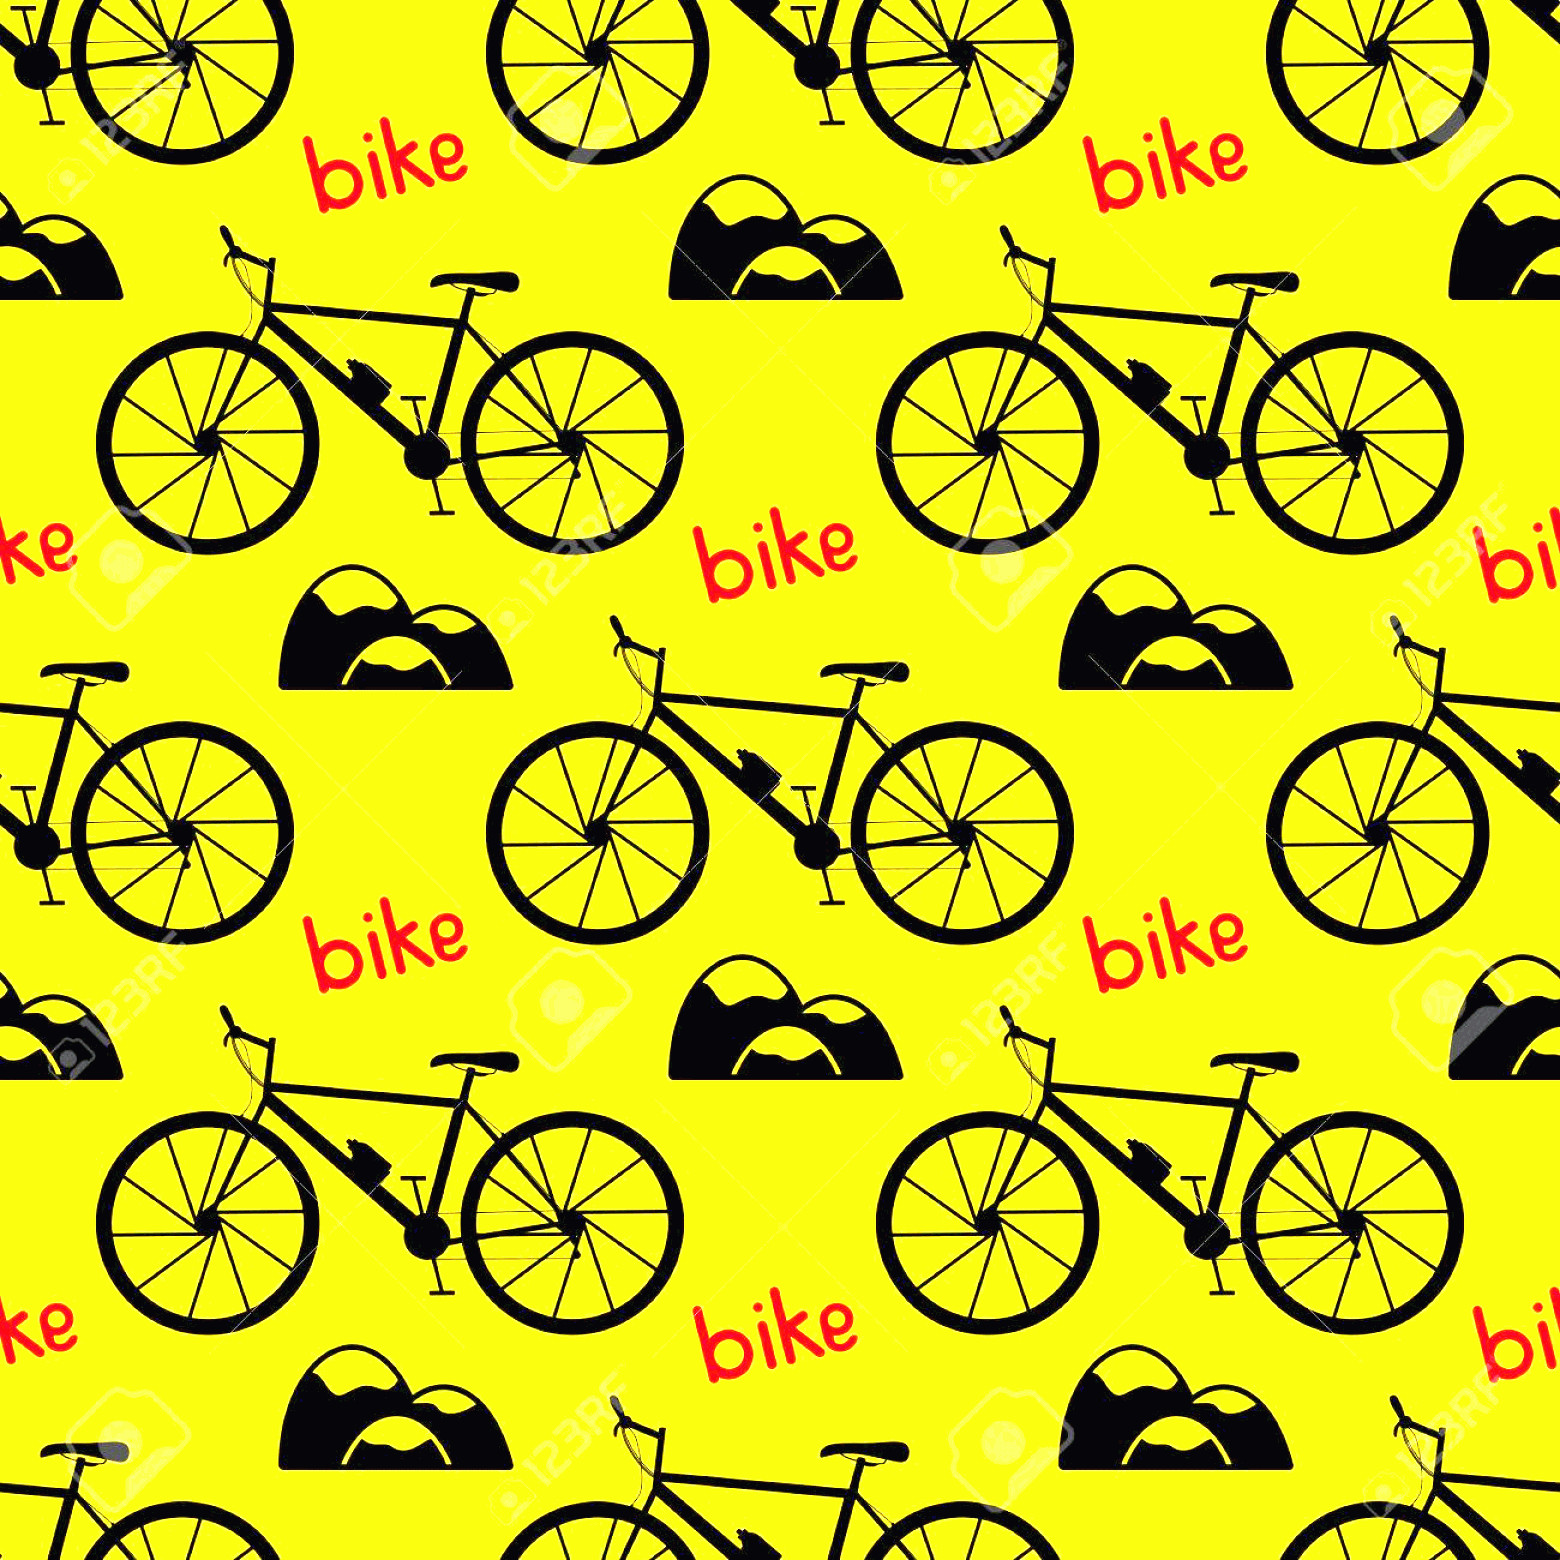 Bicycle Vector Artwork Of Patterns: Photostock Vector Seamless Bicycle Pattern Mountain Bike Vector Illustration